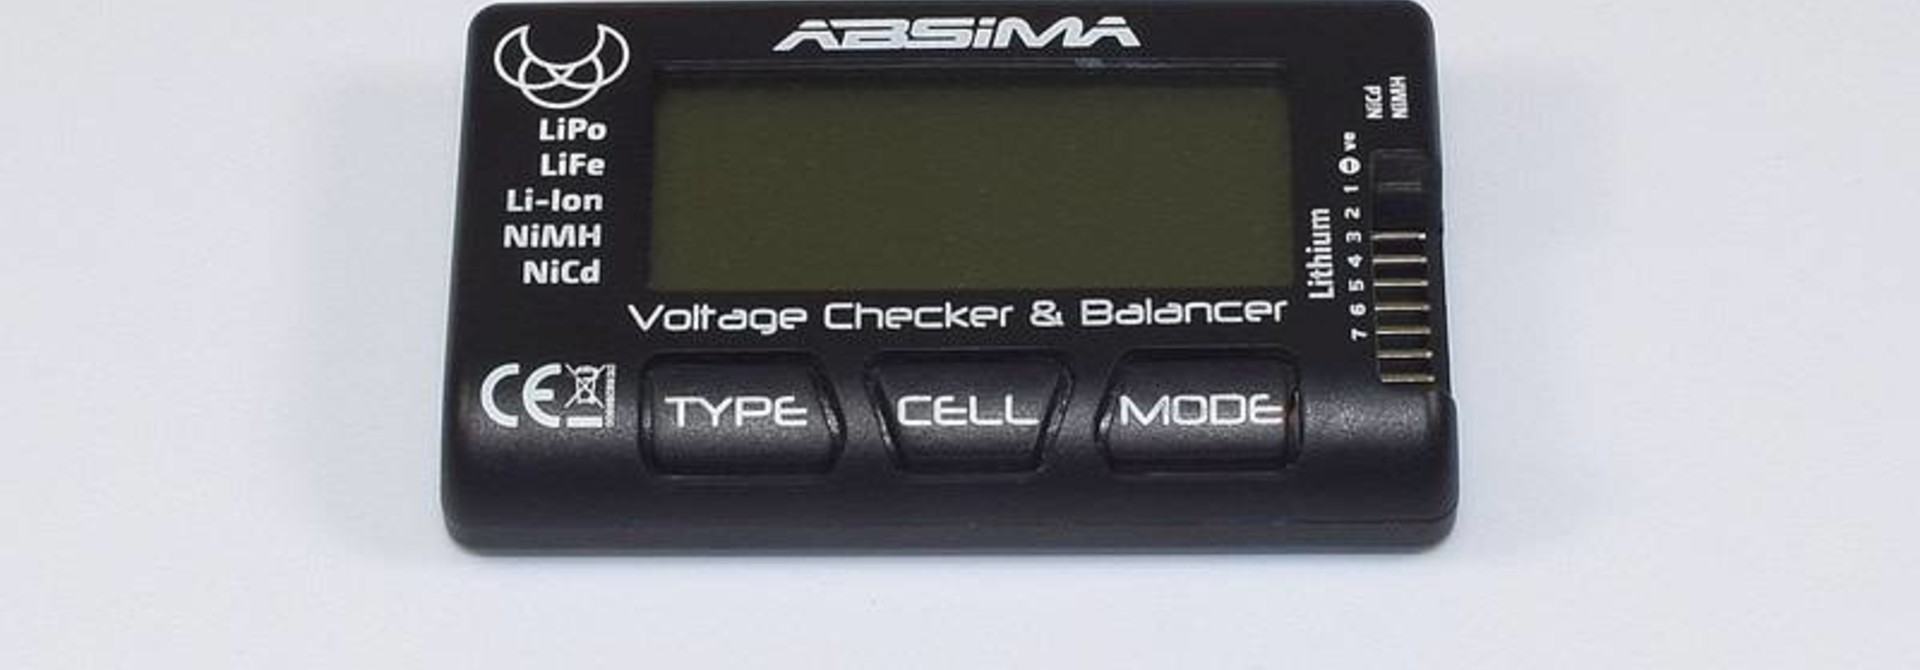 Battery Voltage Checker and Balancer